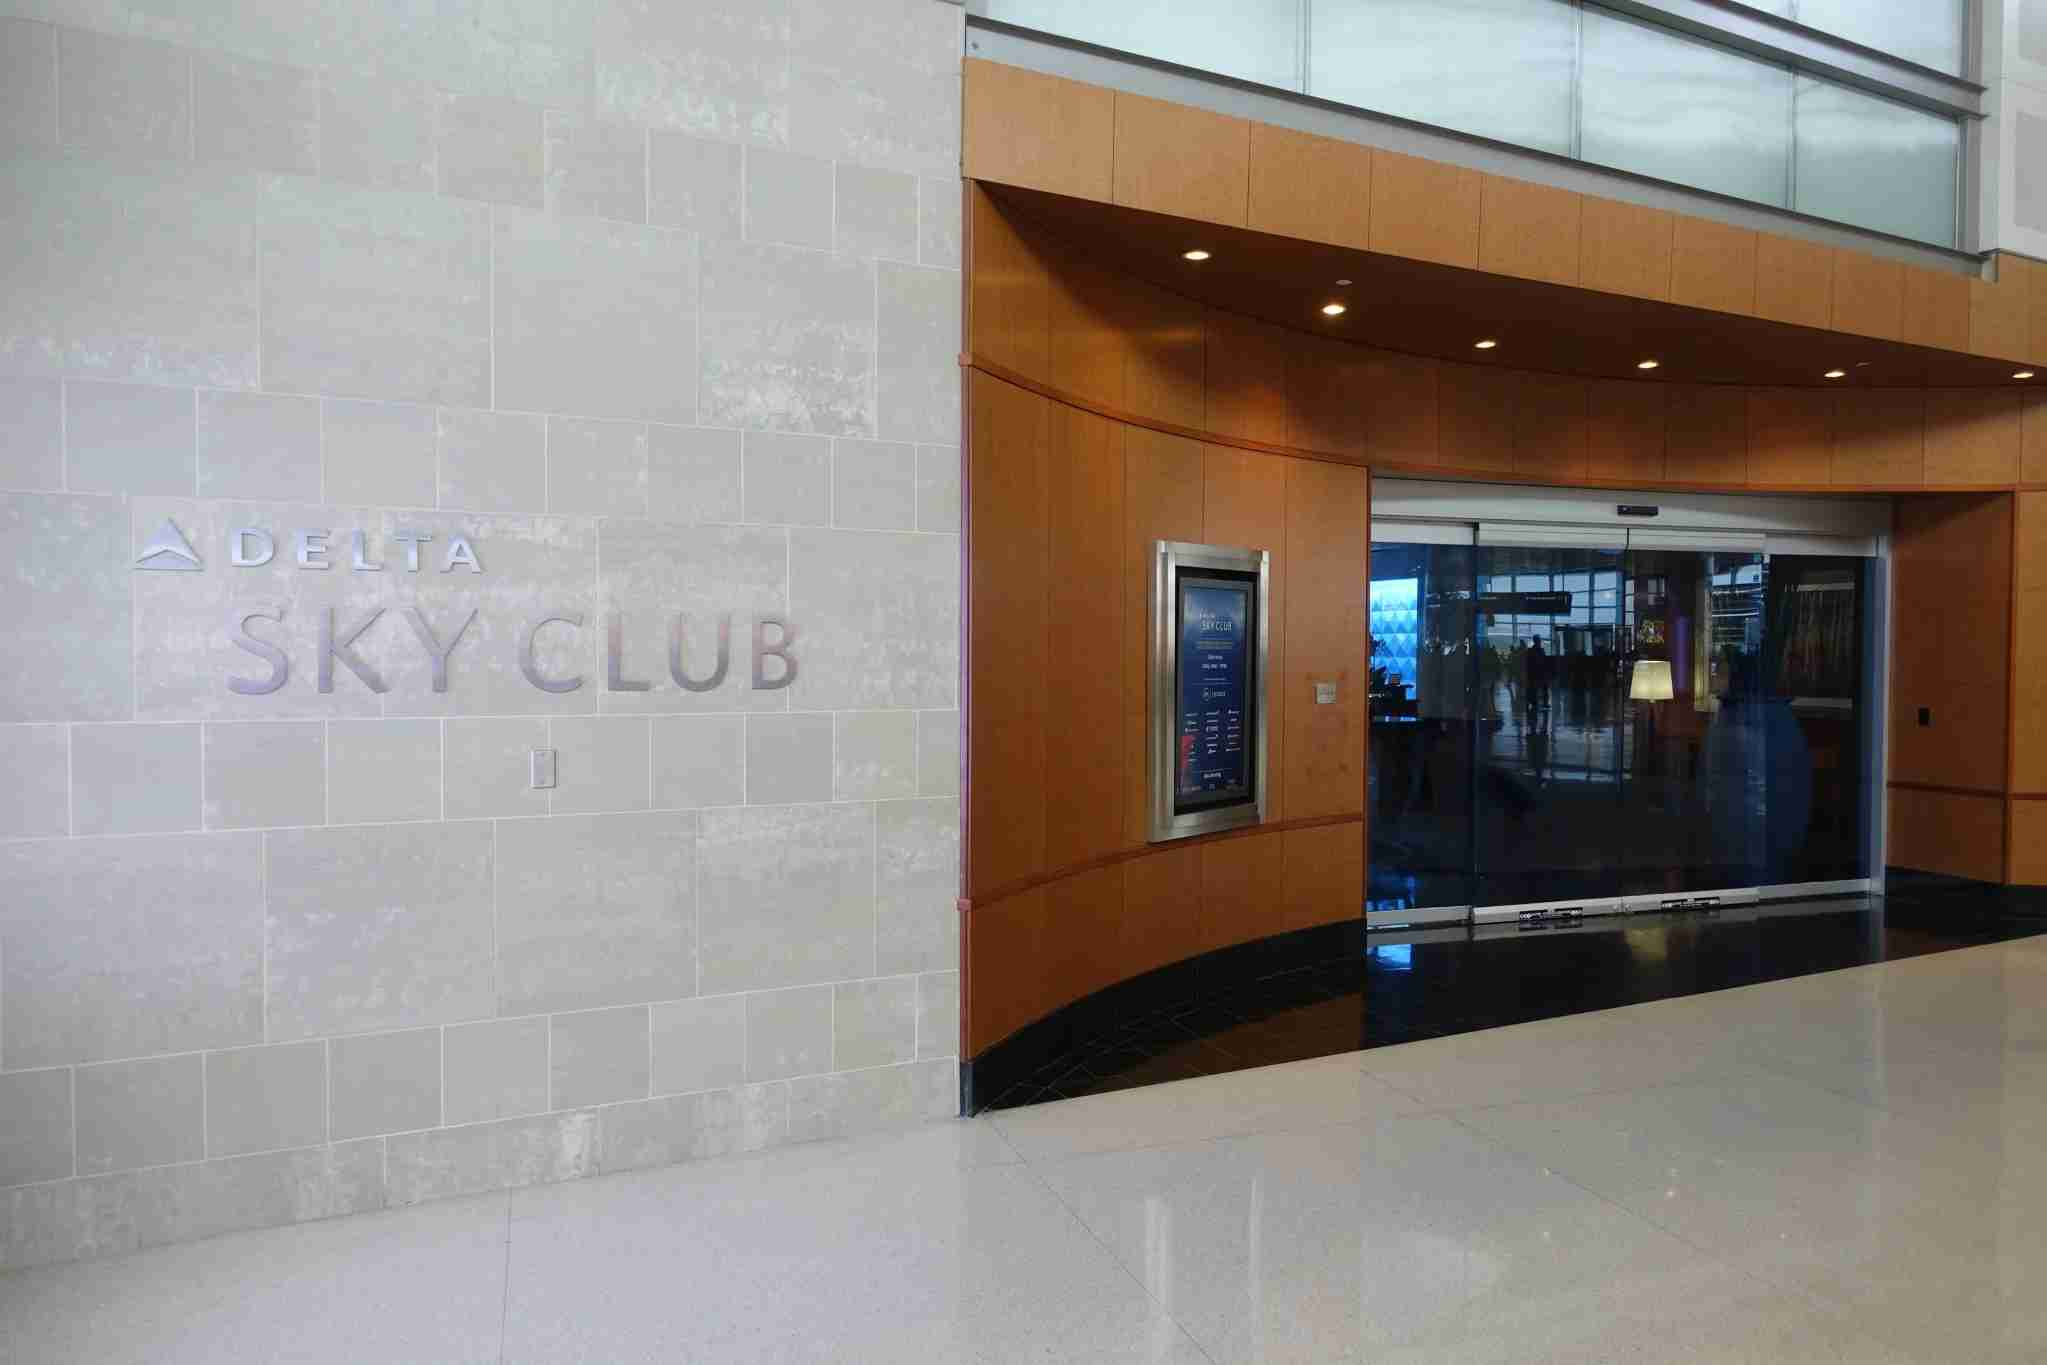 Detroit Main Sky Club in Concourse A